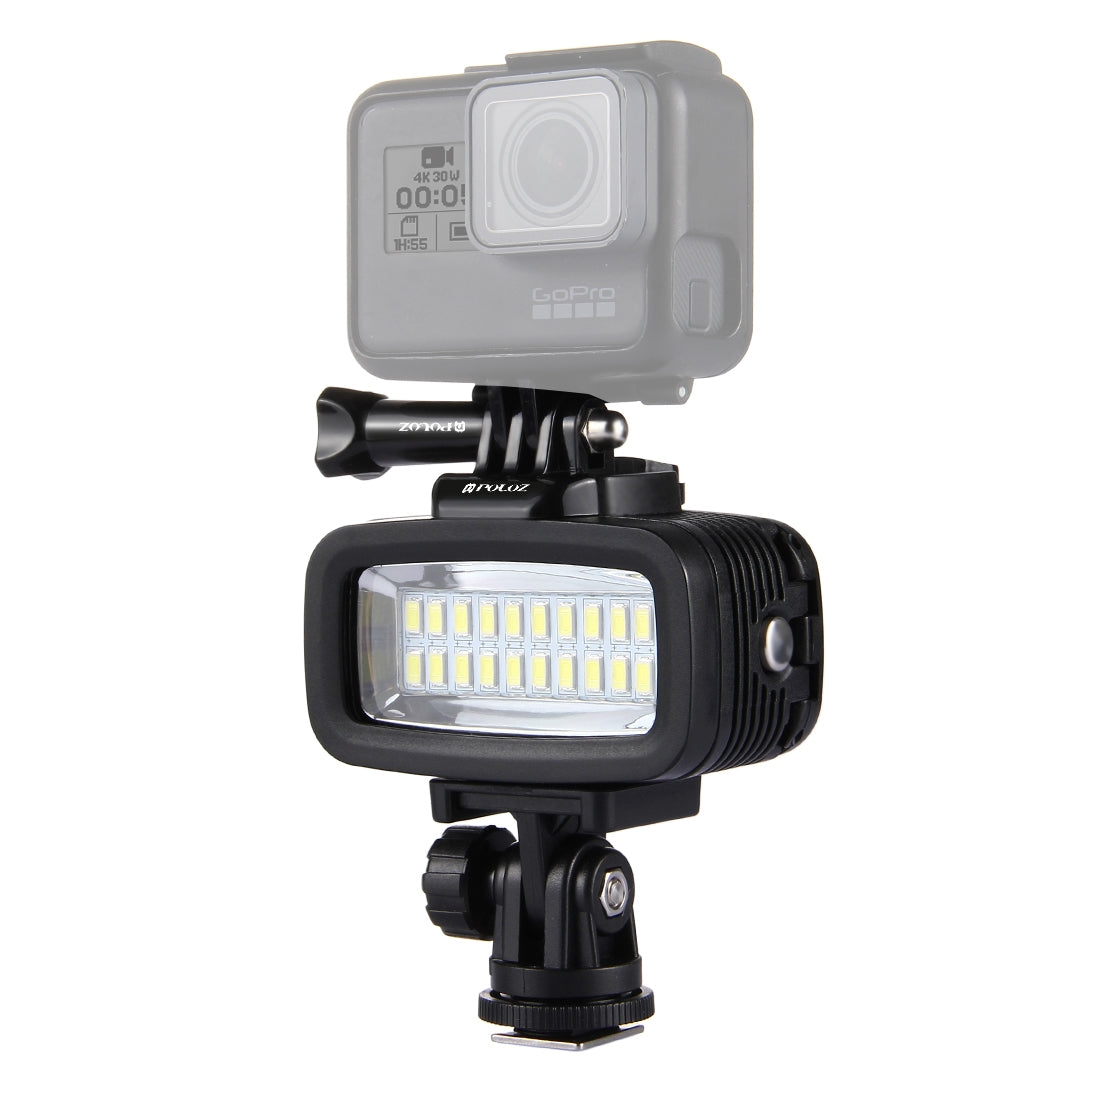 20 LEDs 40m Waterproof IPX8 Studio Light Video & Photo Light with Hot Shoe Base Adapter & Quick Release Buckle & Long Screw & 2 x